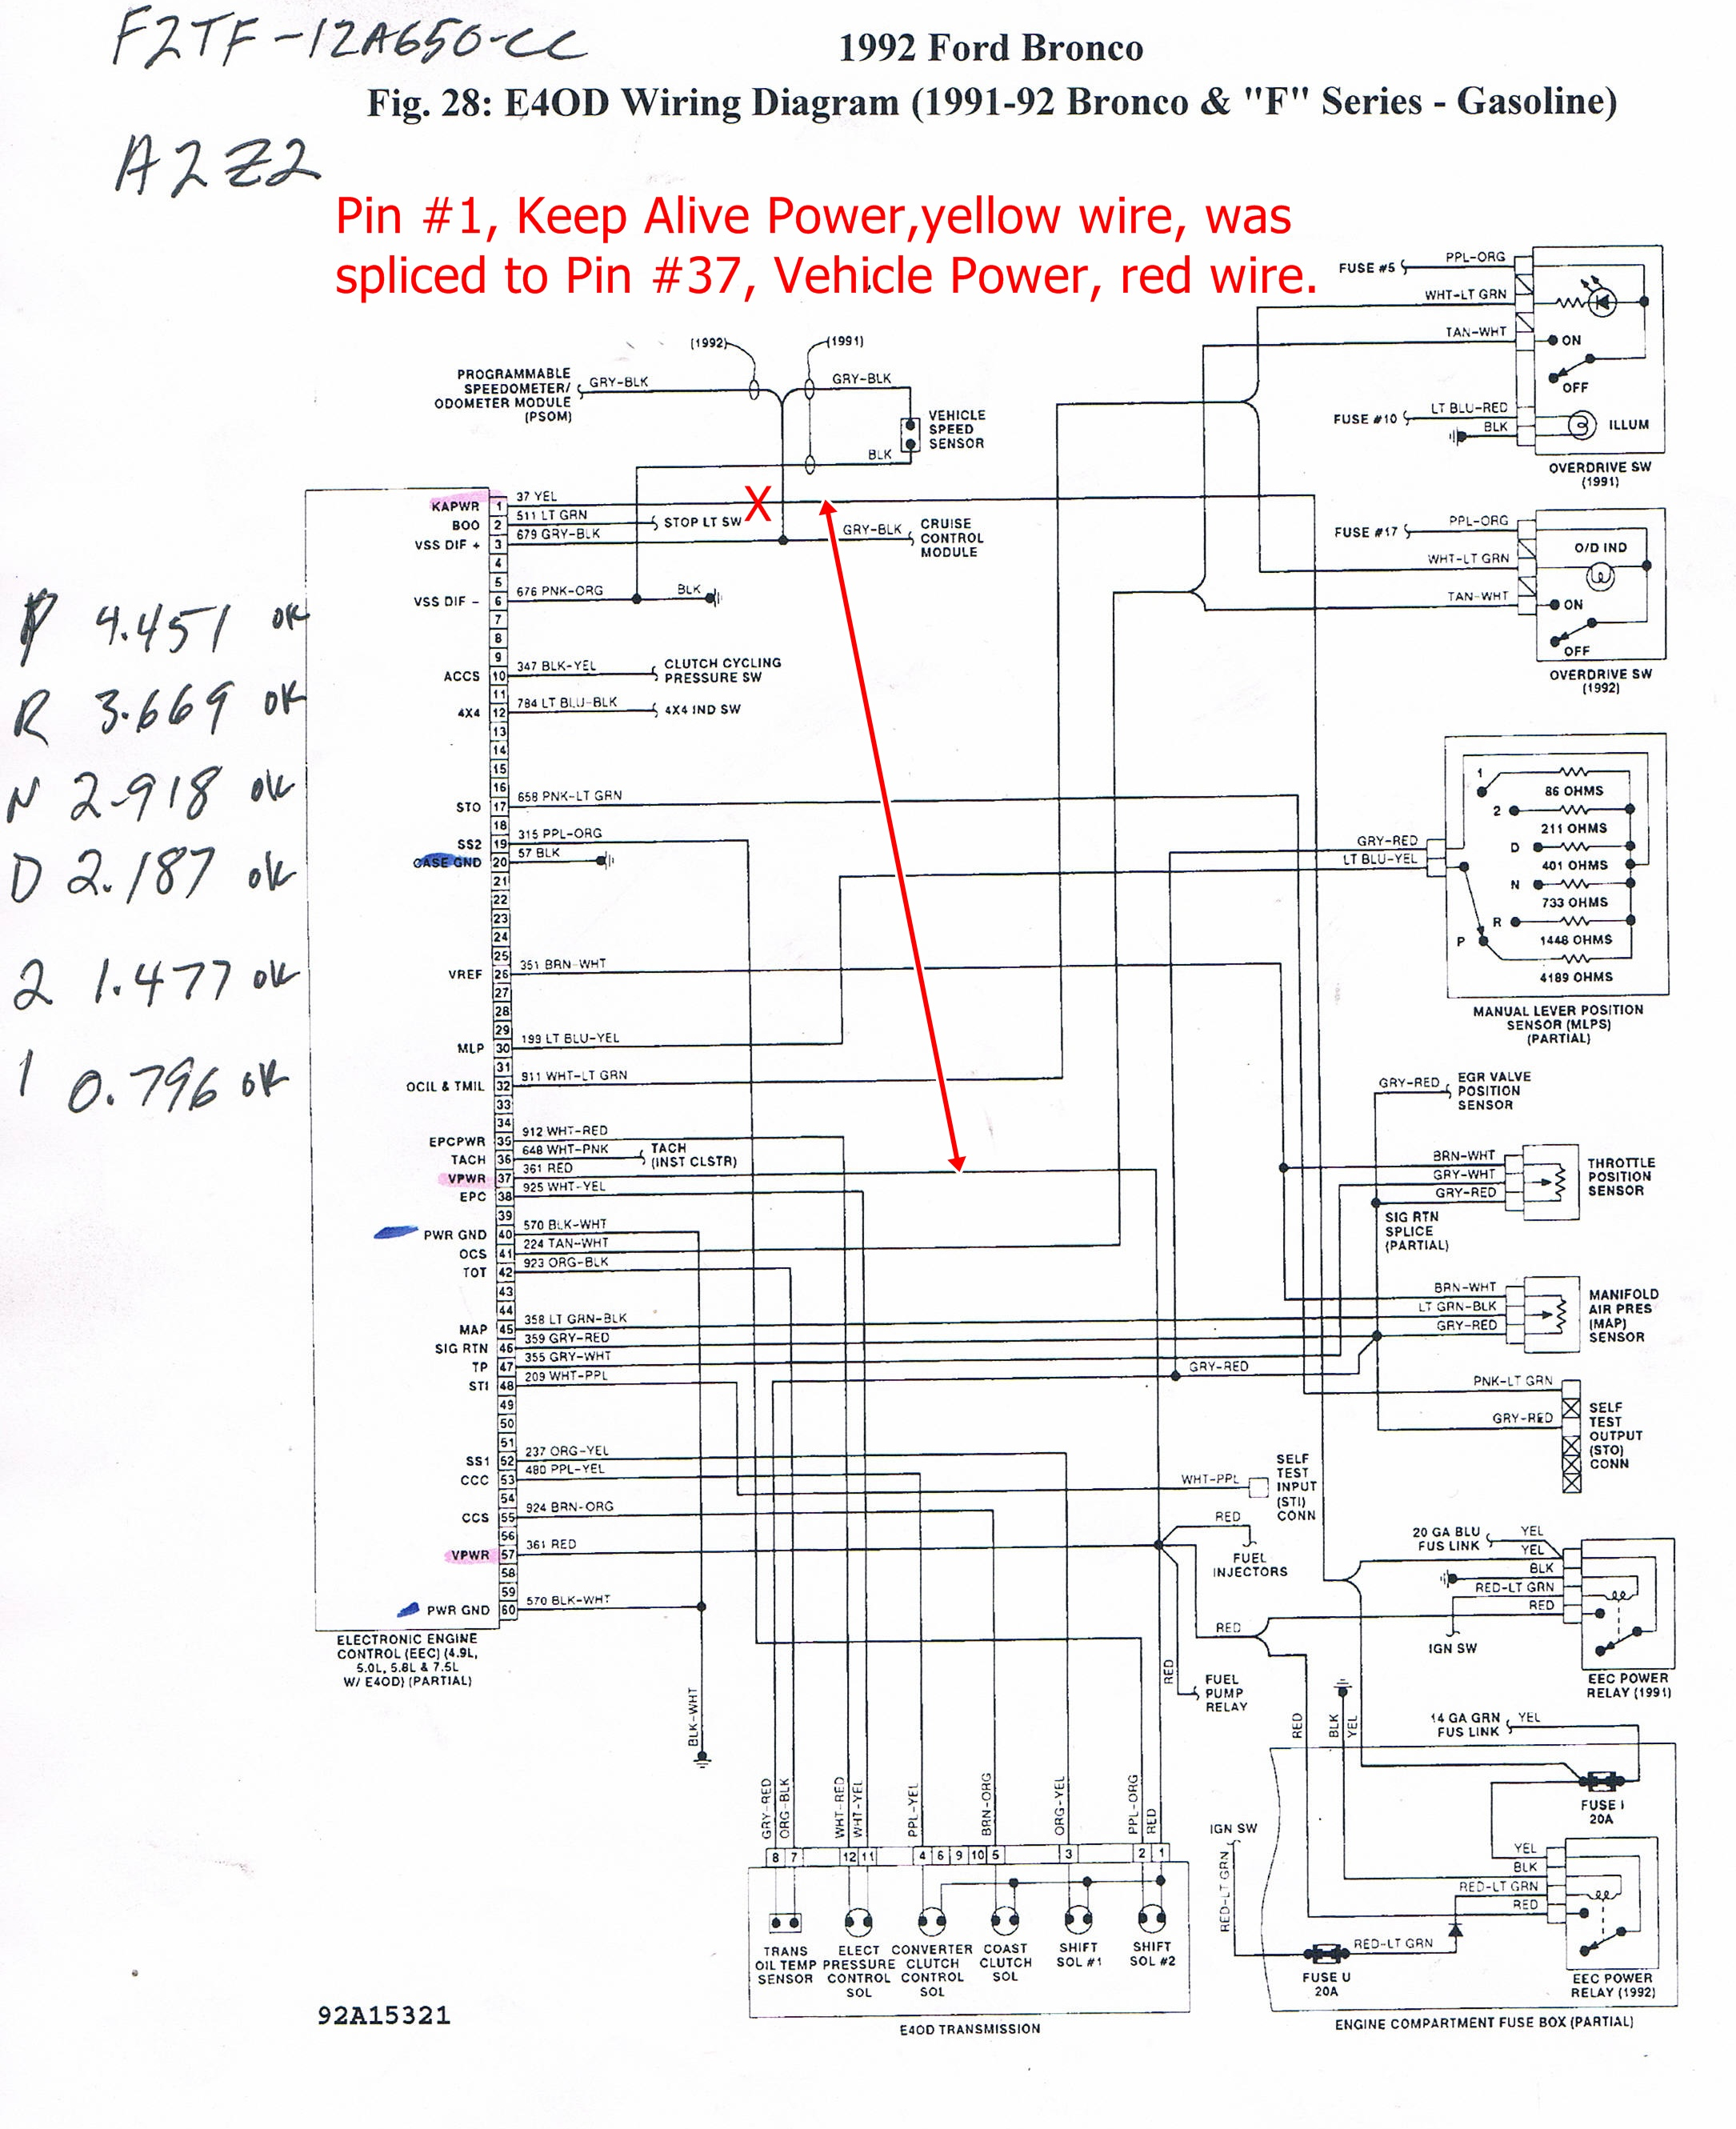 lexus is220d wiring diagram best wiring library Lexus IS 350 F Sport volvo headlamp wire harness auto electrical wiring diagram rh stanford edu uk co gov hardtobelieve me